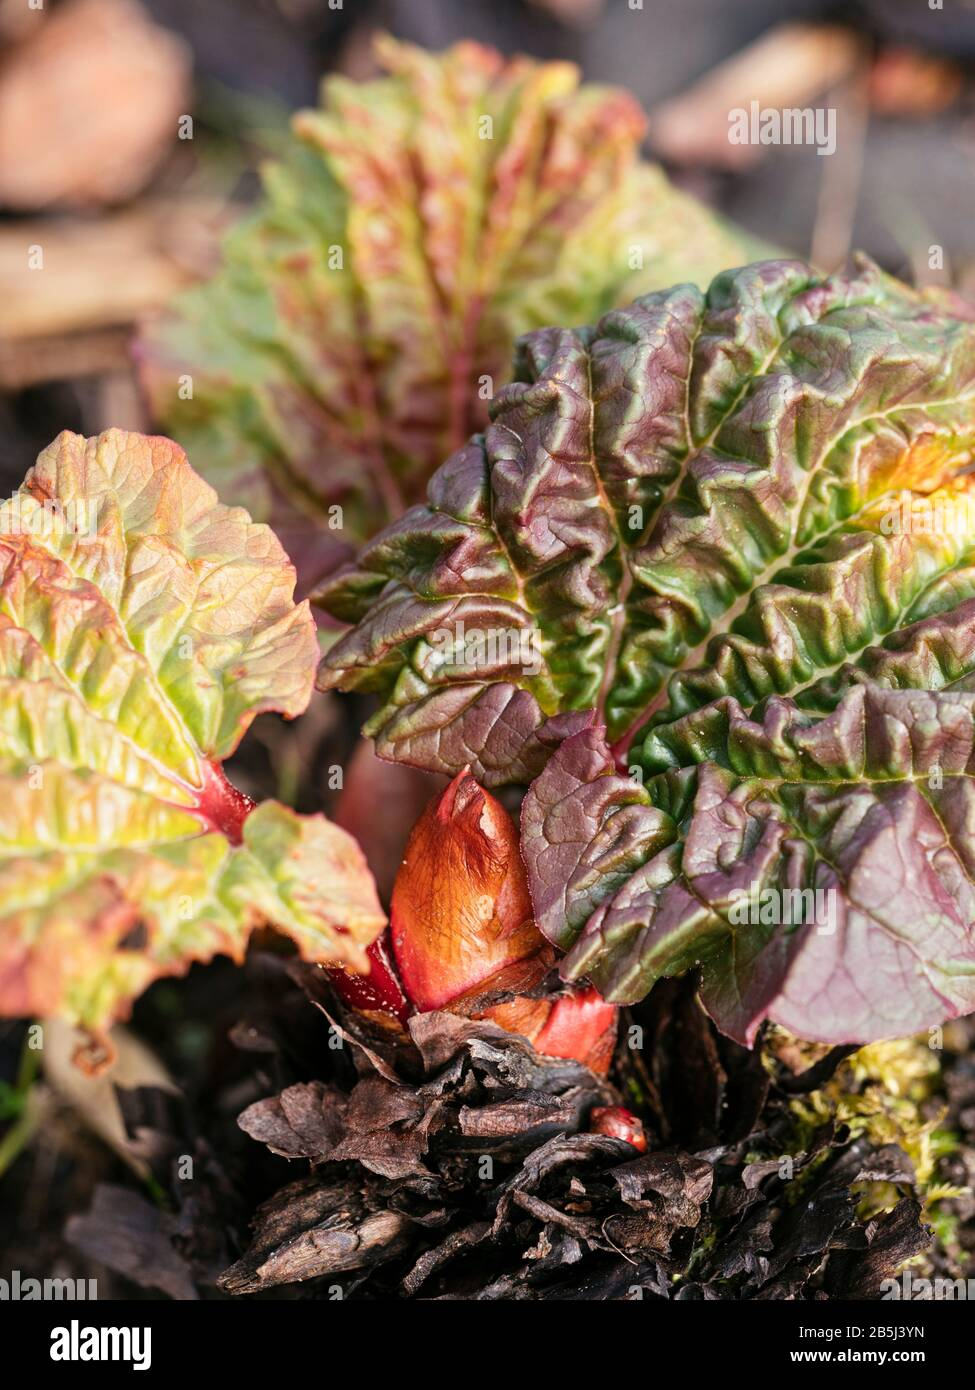 Rhubarb stalks appearing in March. Stock Photo